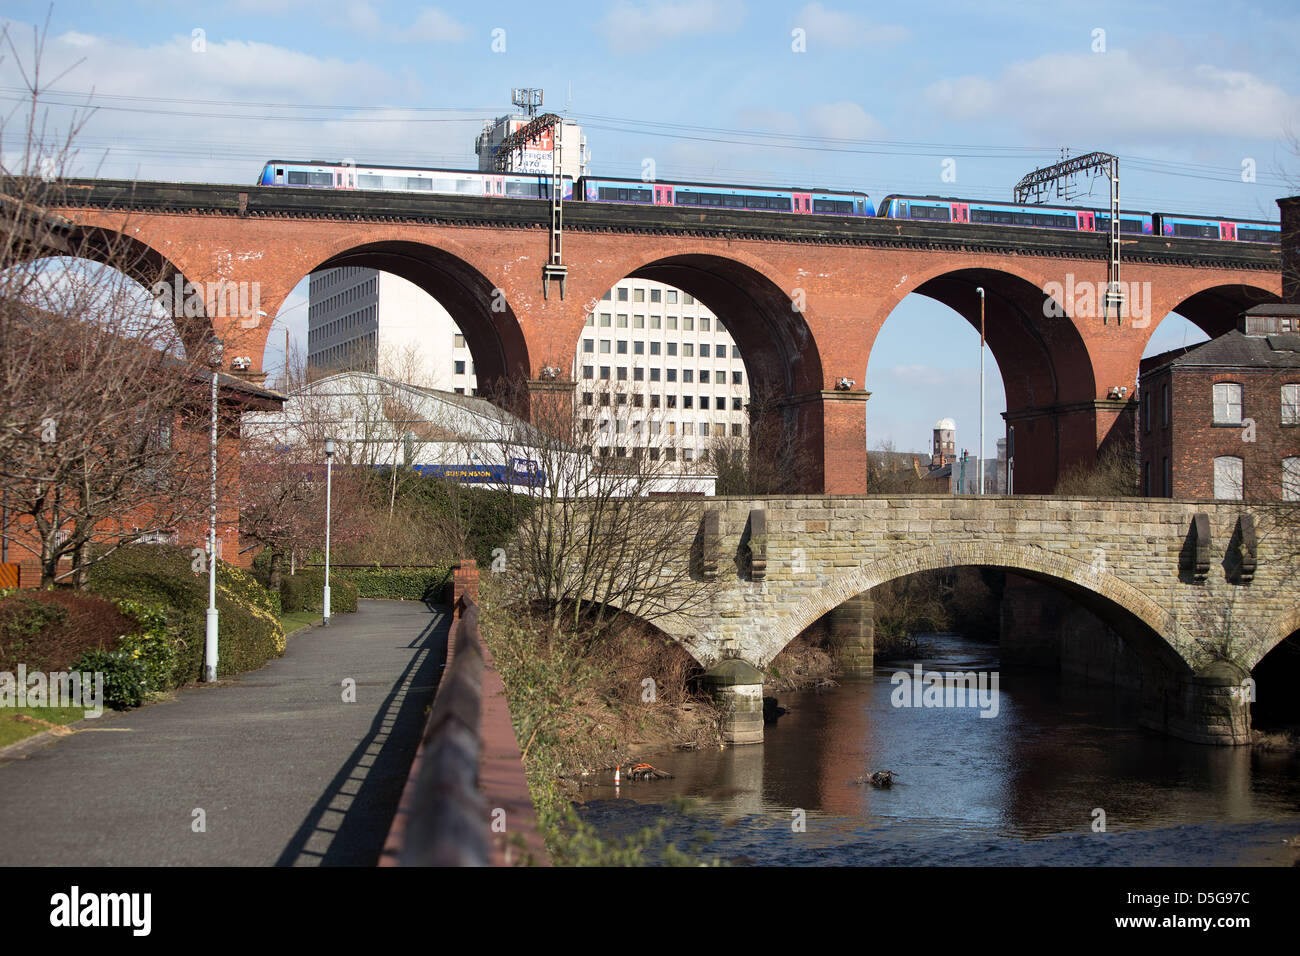 The Stockport Viaduct . The bridge carries the railway over the River Mersey in Stockport , Greater Manchester - Stock Image